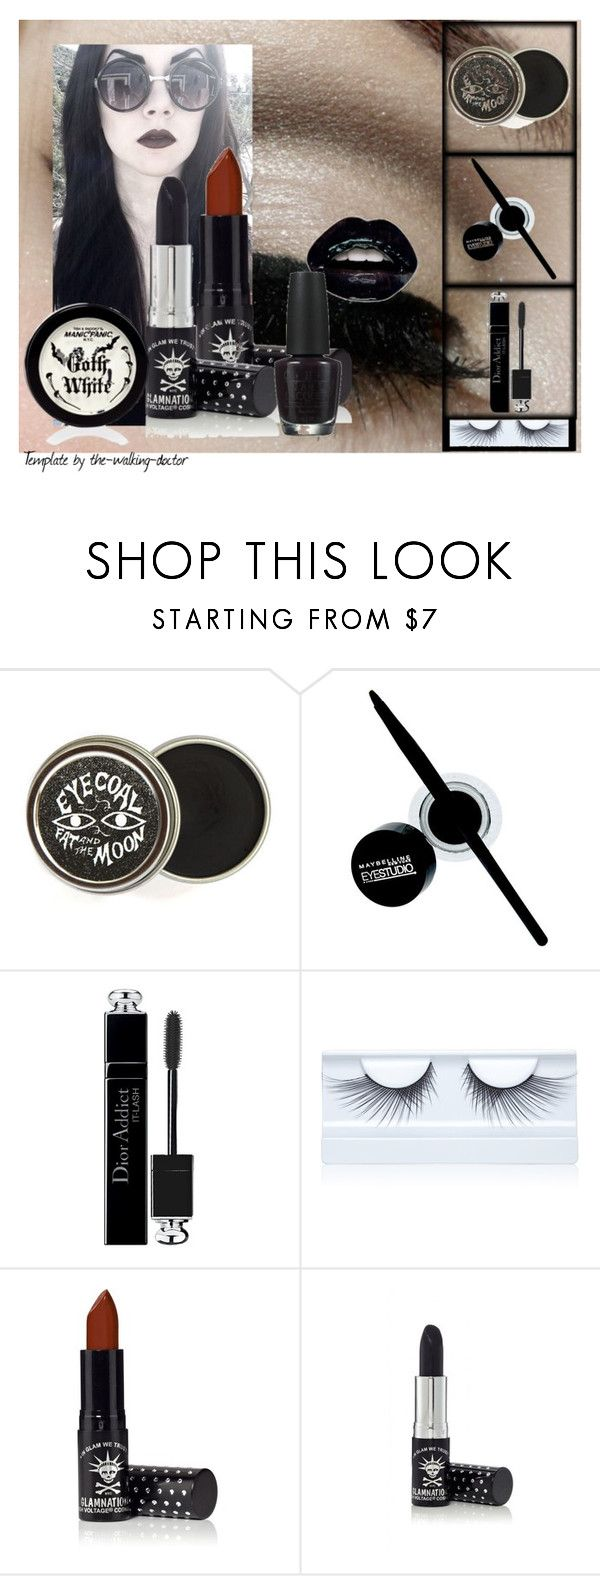 """""""Set #1351 - My Beauty Mode"""" by the-walking-doctor ❤ liked on Polyvore featuring beauty, Maybelline, Christian Dior, Gorgeous Cosmetics, Manic Panic and OPI"""